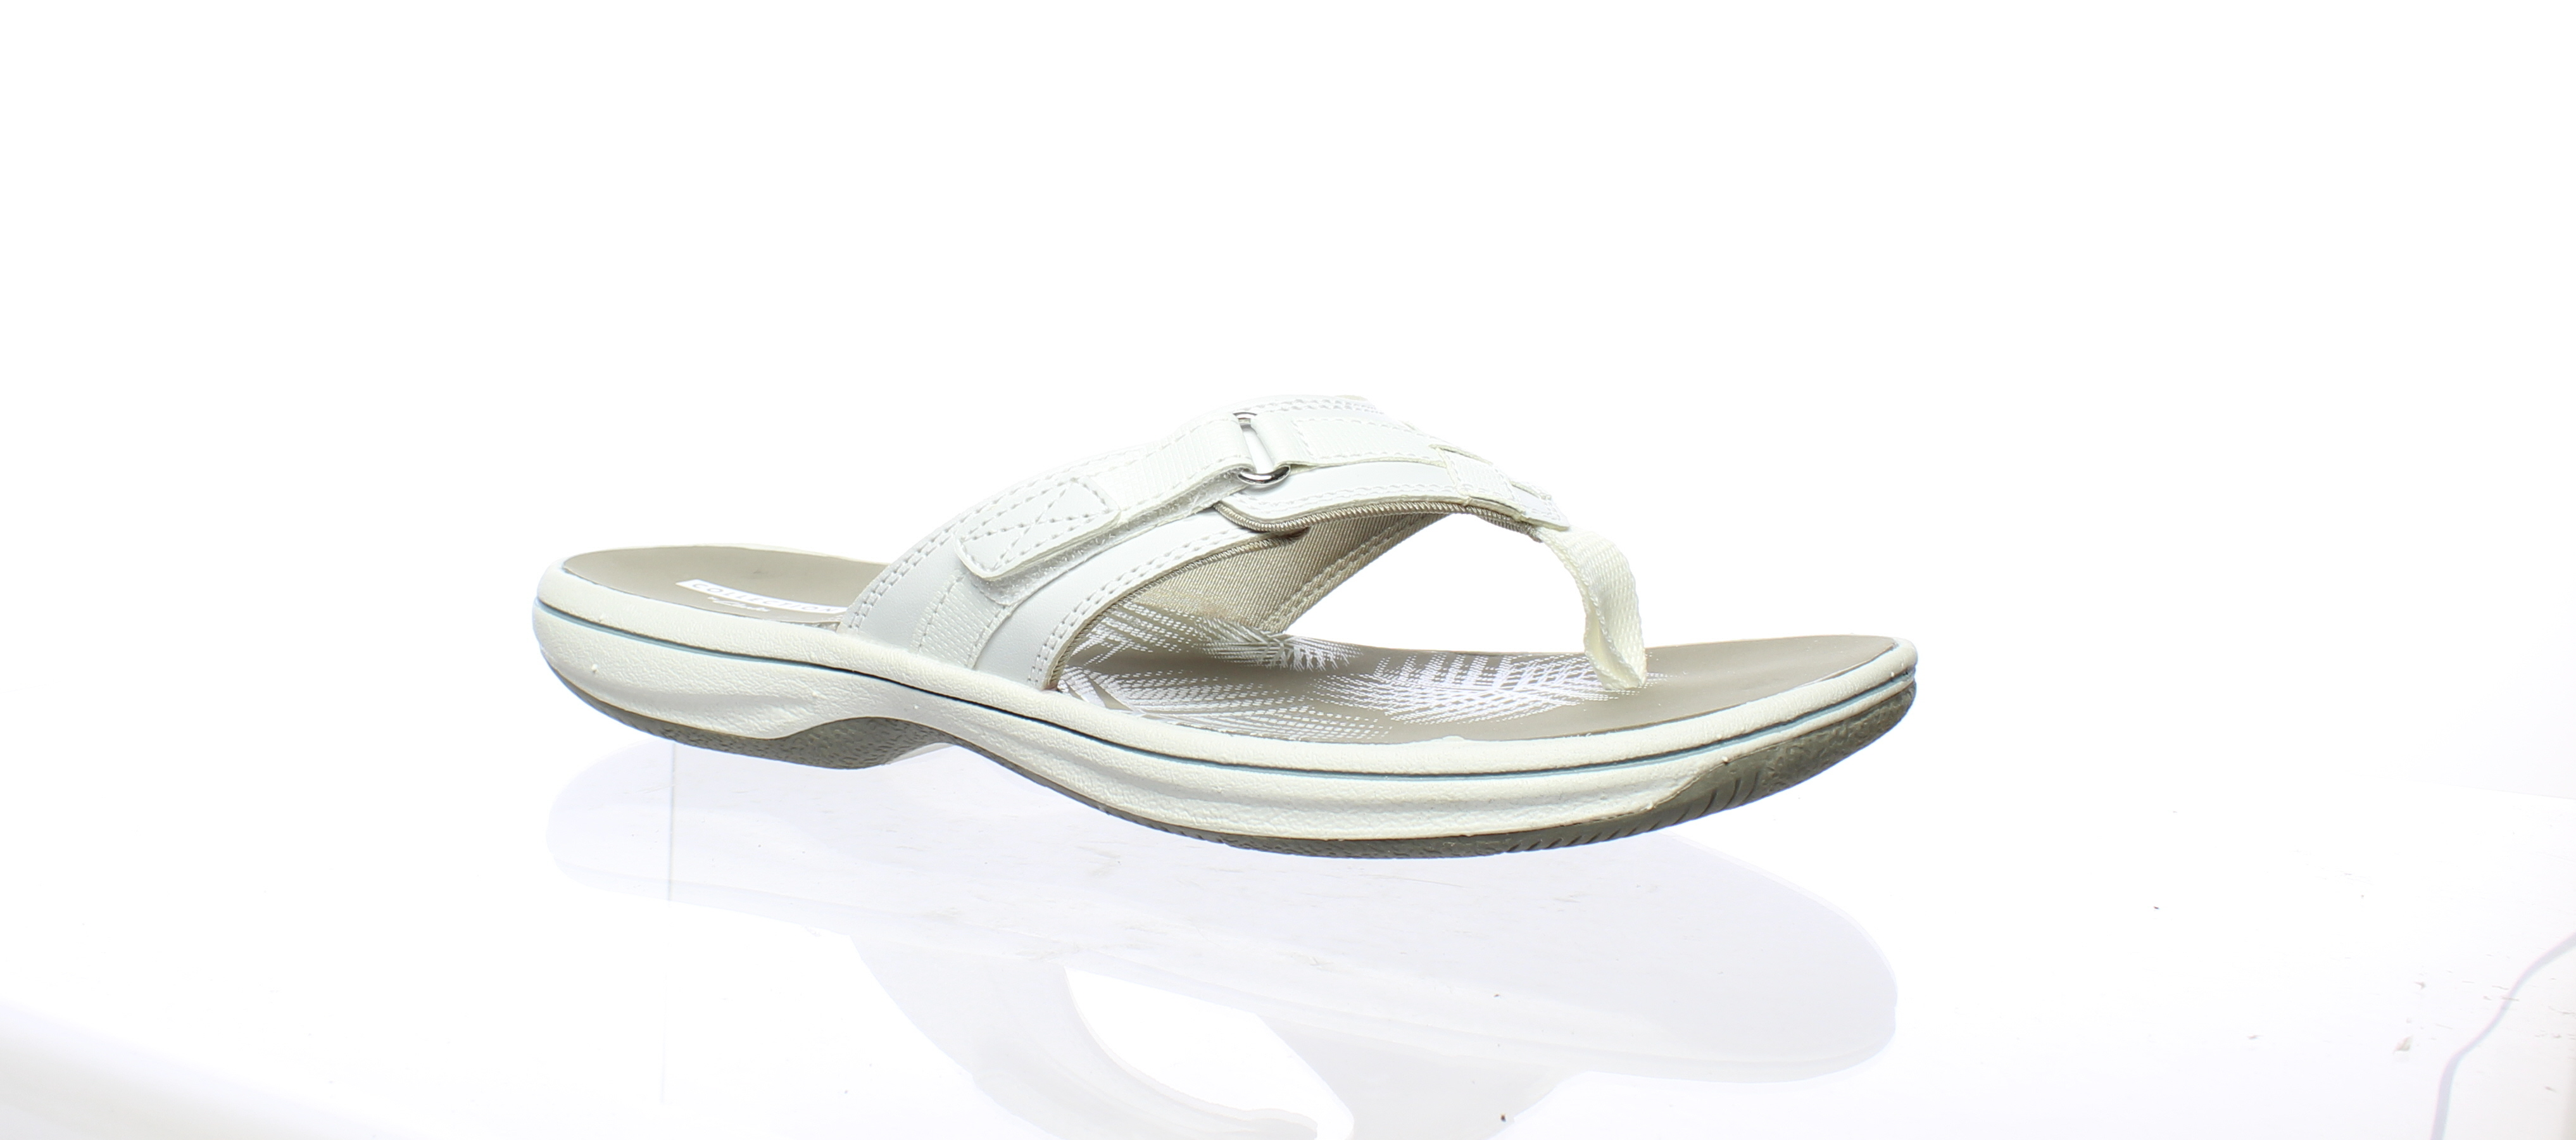 b334a99e07a Clarks Womens Breeze Sea New White Synthetic Flip Flops Size 8 ...